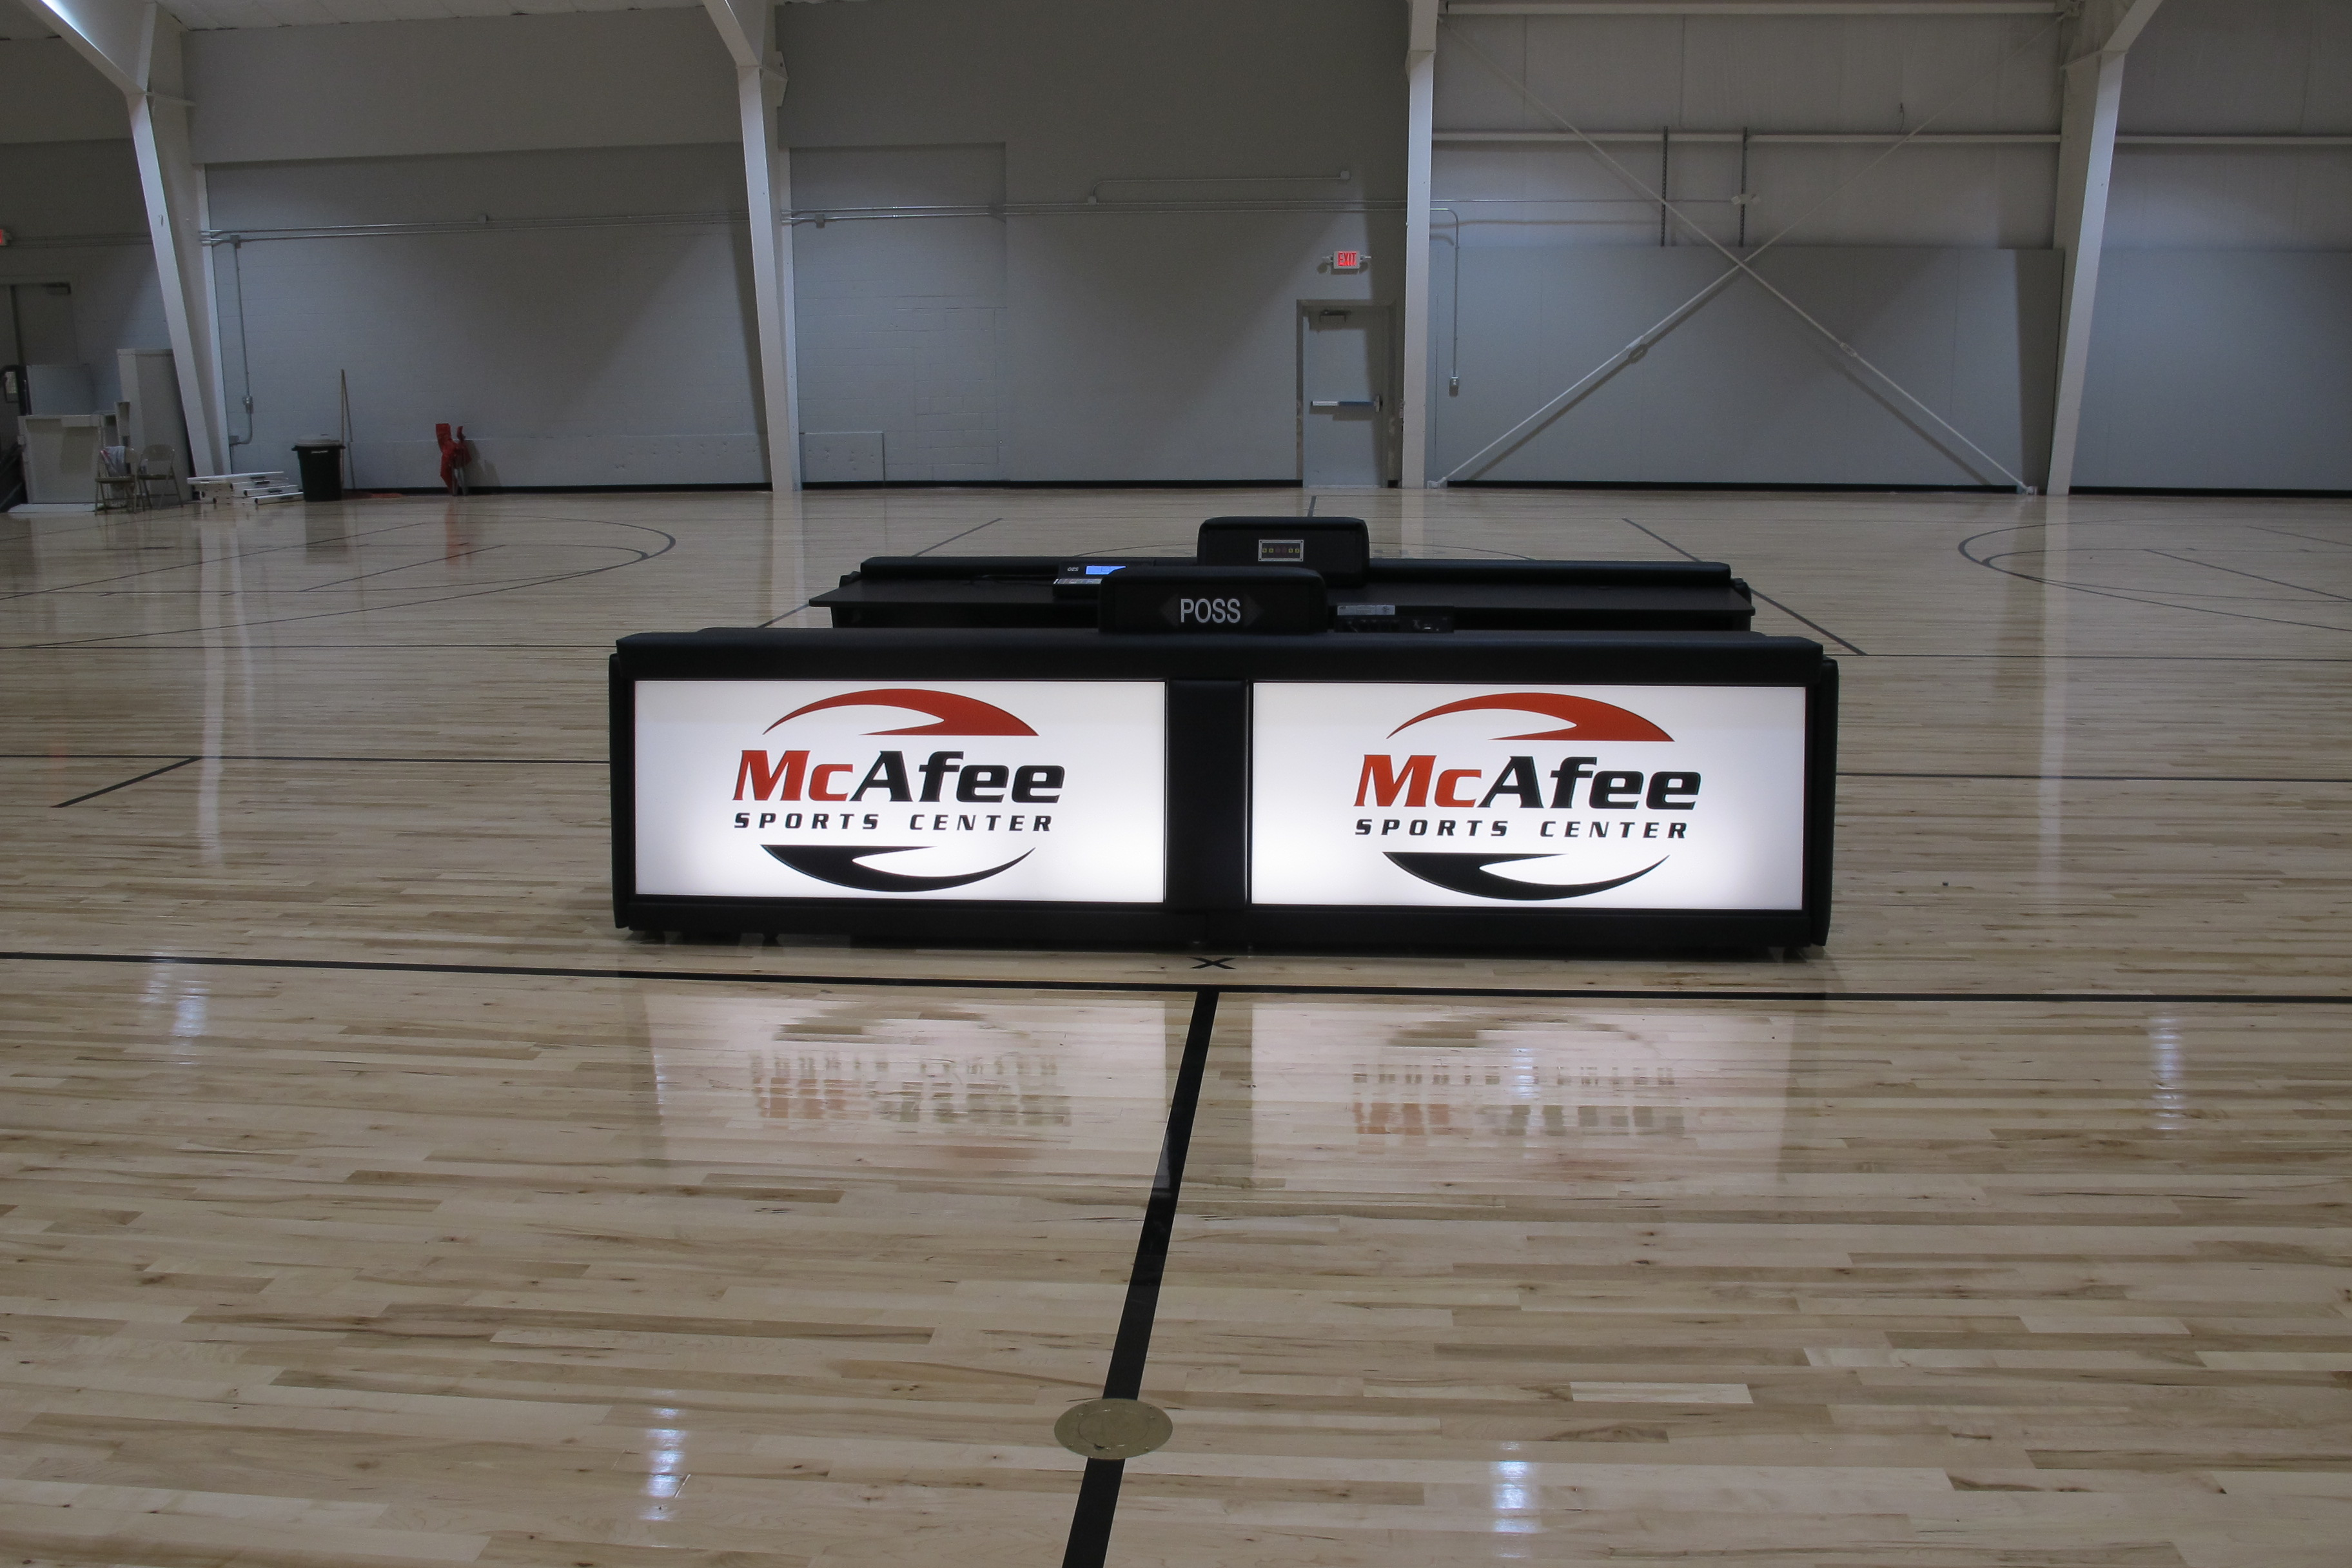 McAfee Sports Center Scoring tables